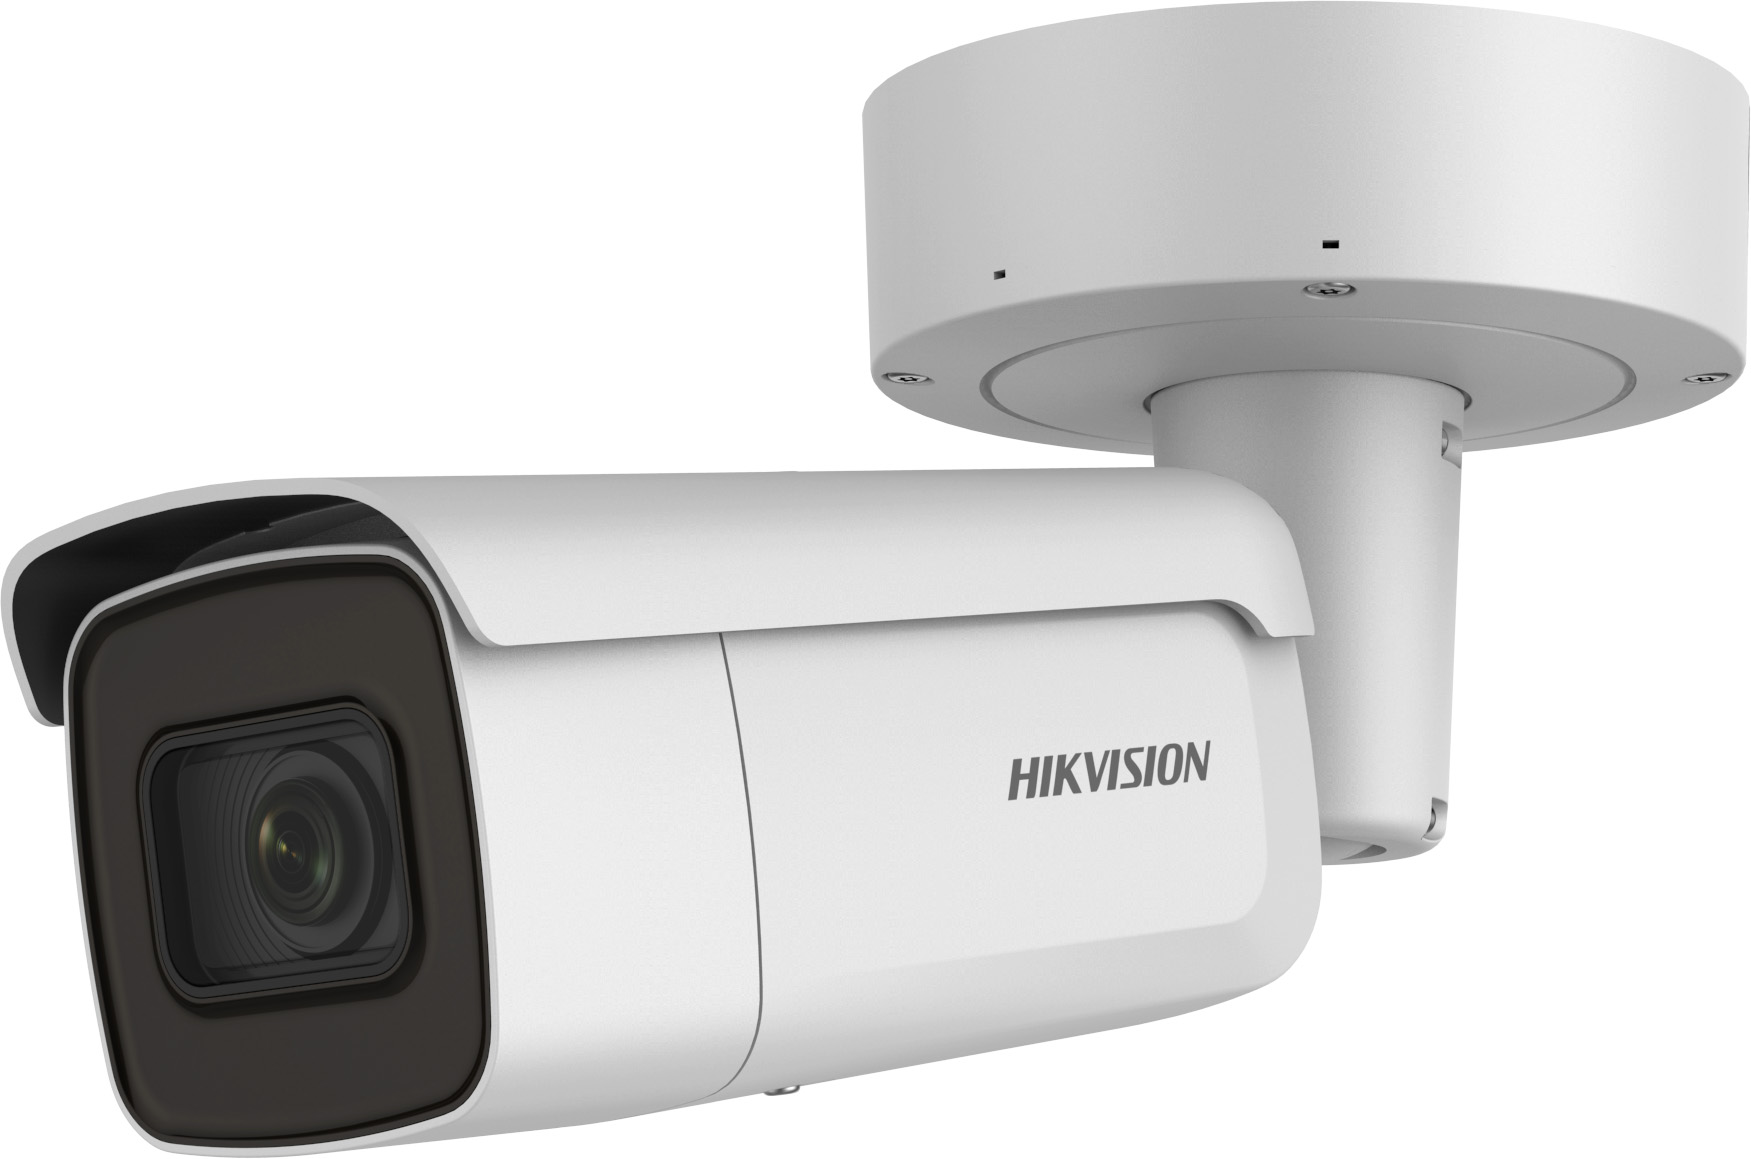 Hikvision DS-2CD2683G0-IZS 2.8-12mm